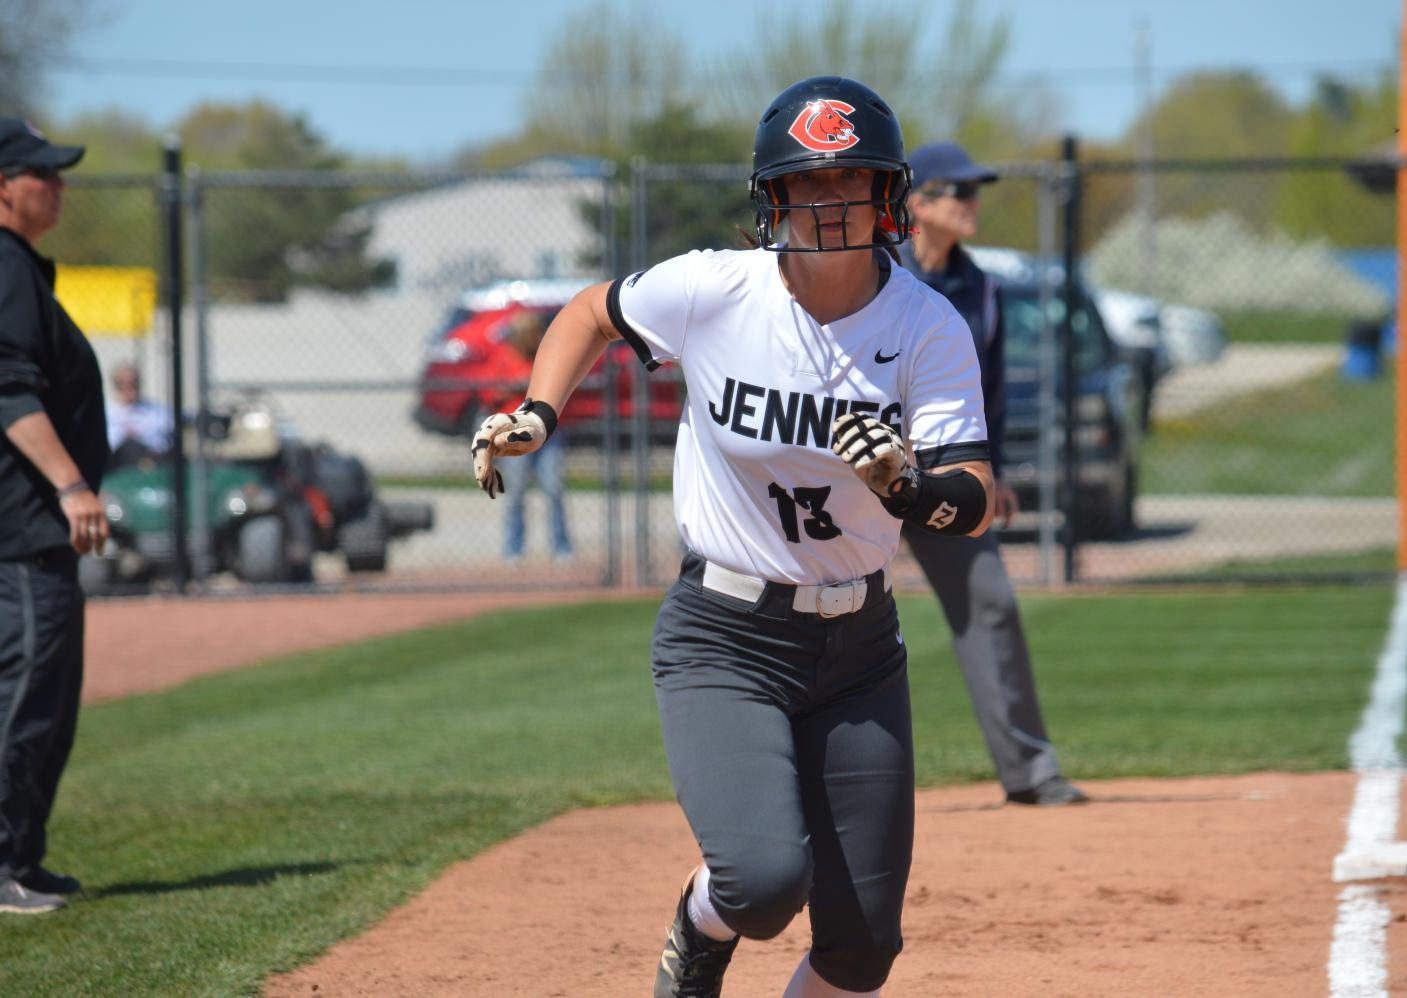 Jennies%E2%80%99+Softball+Wins+Double+Header+Against+Fort+Hays+Lady+Tigers